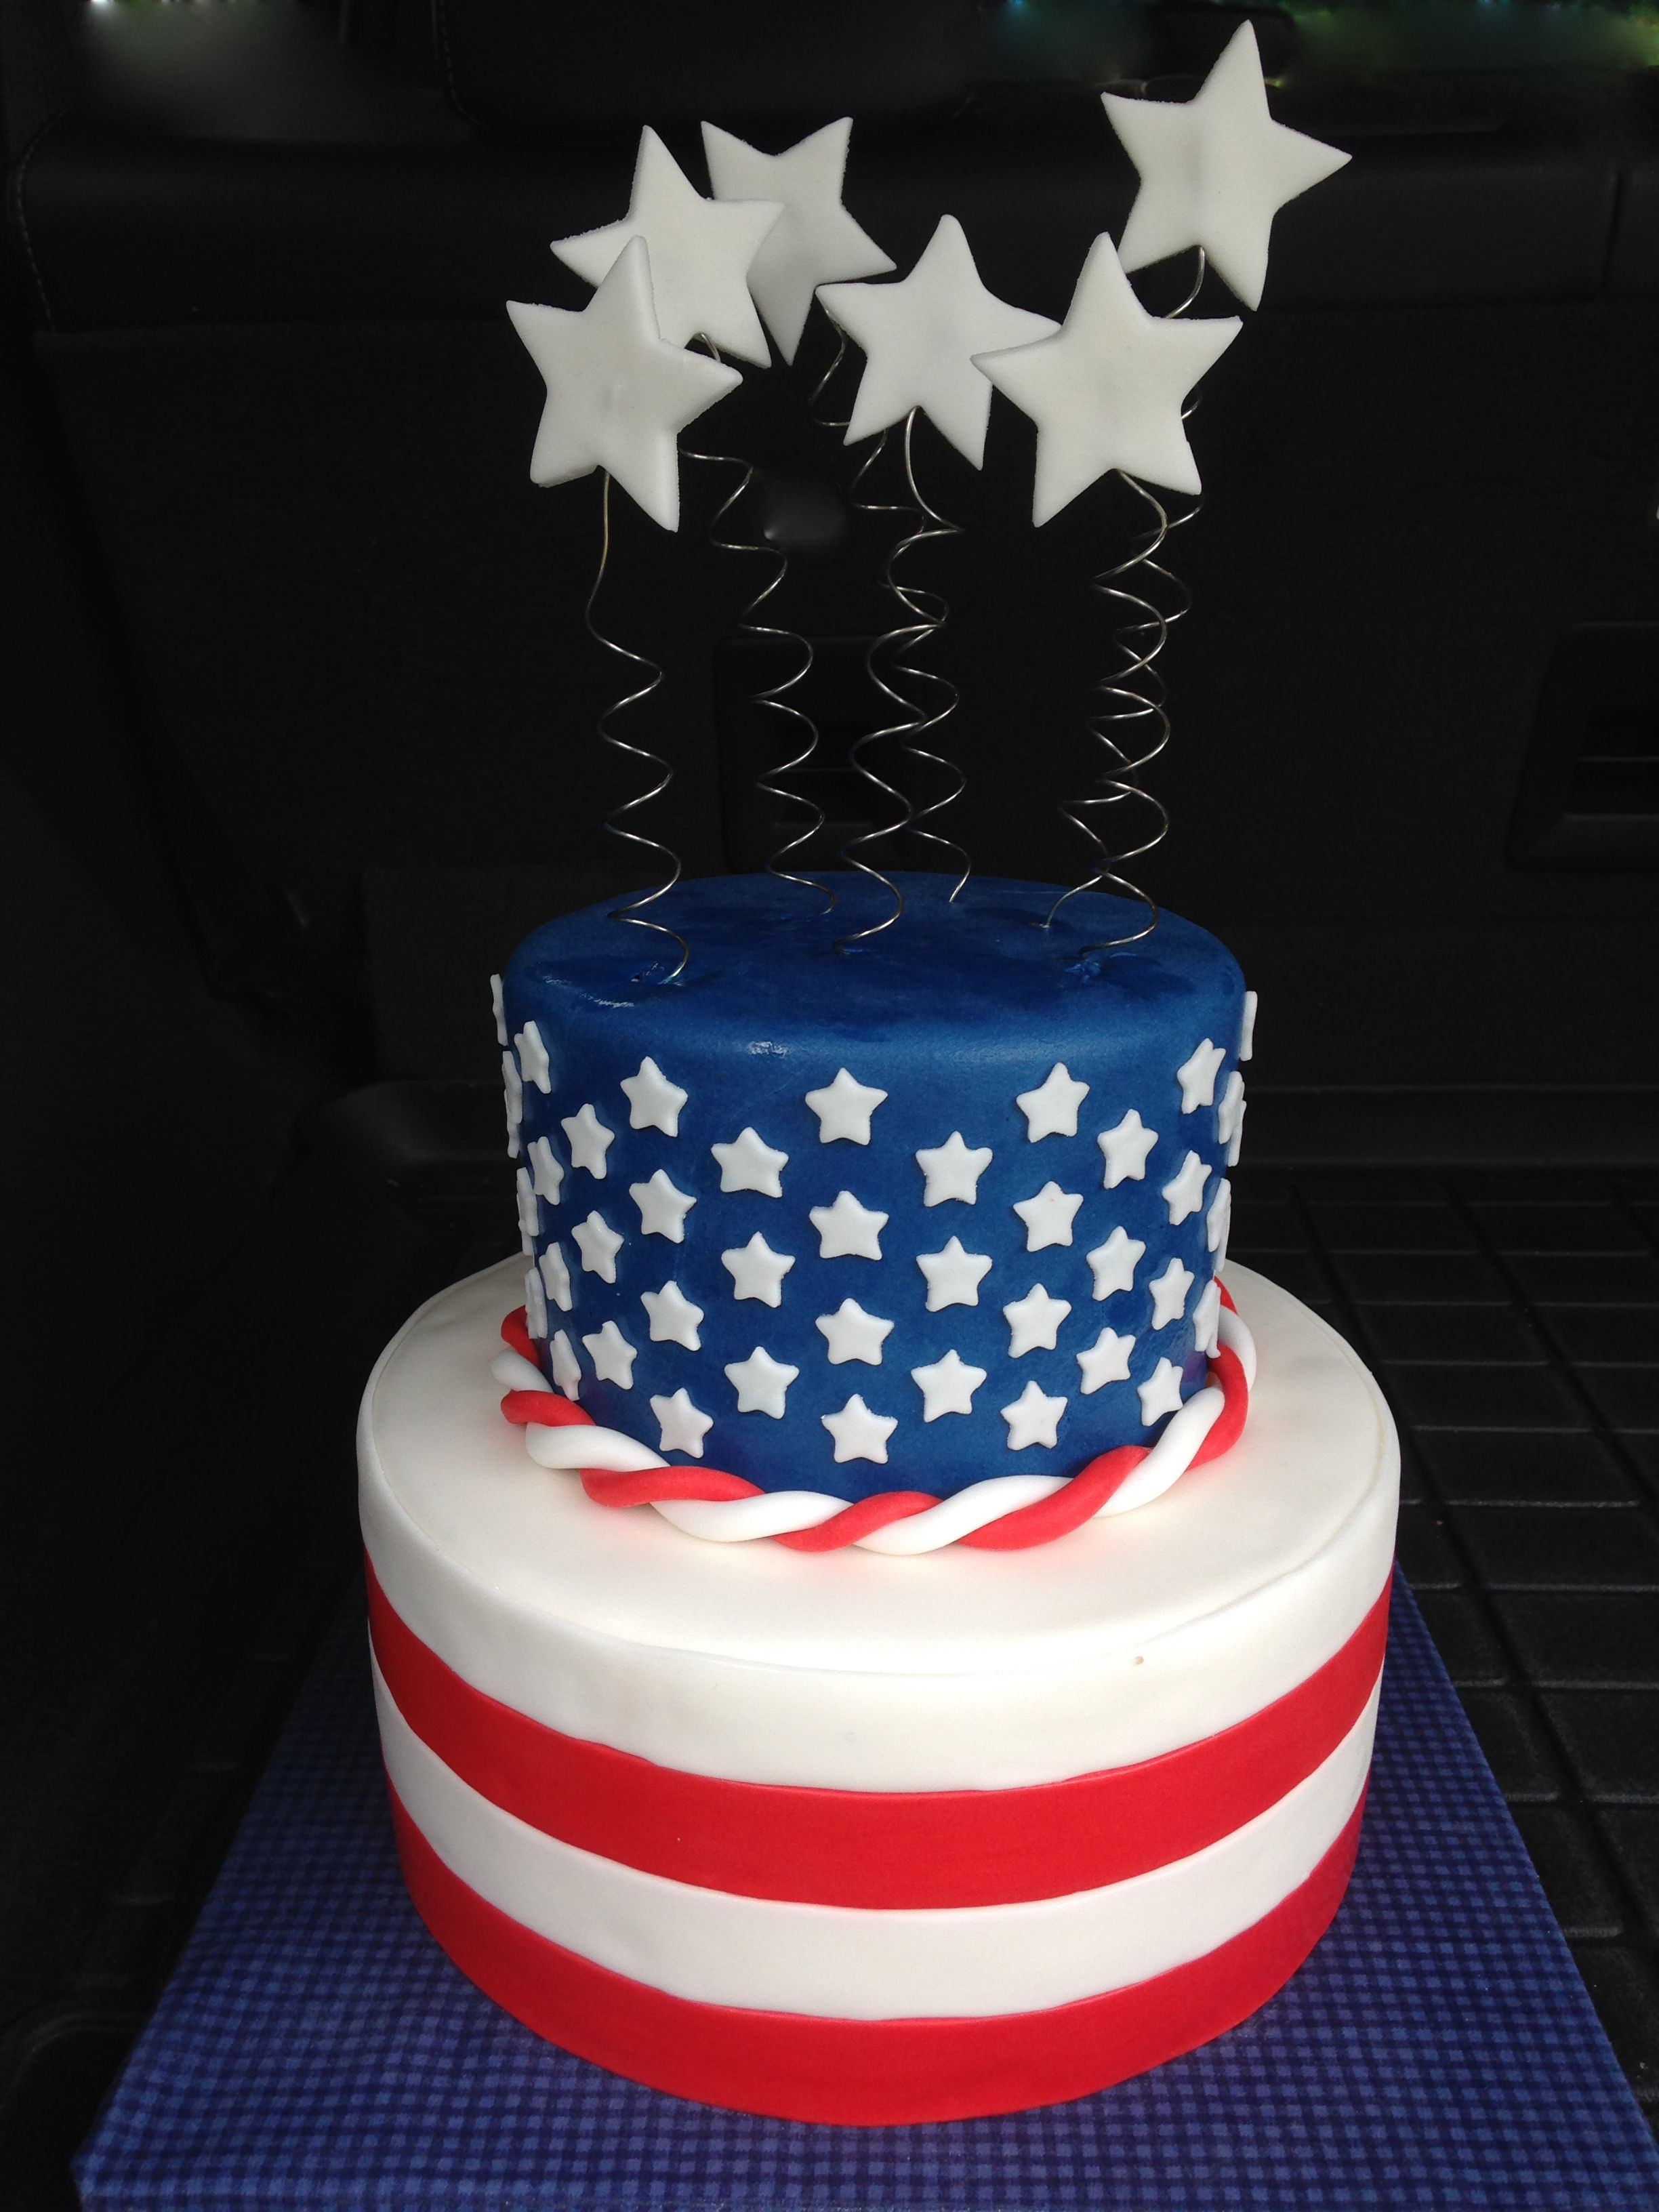 American Flag Cake Themed Cakes Pinterest See more best ideas about American flag cake ...